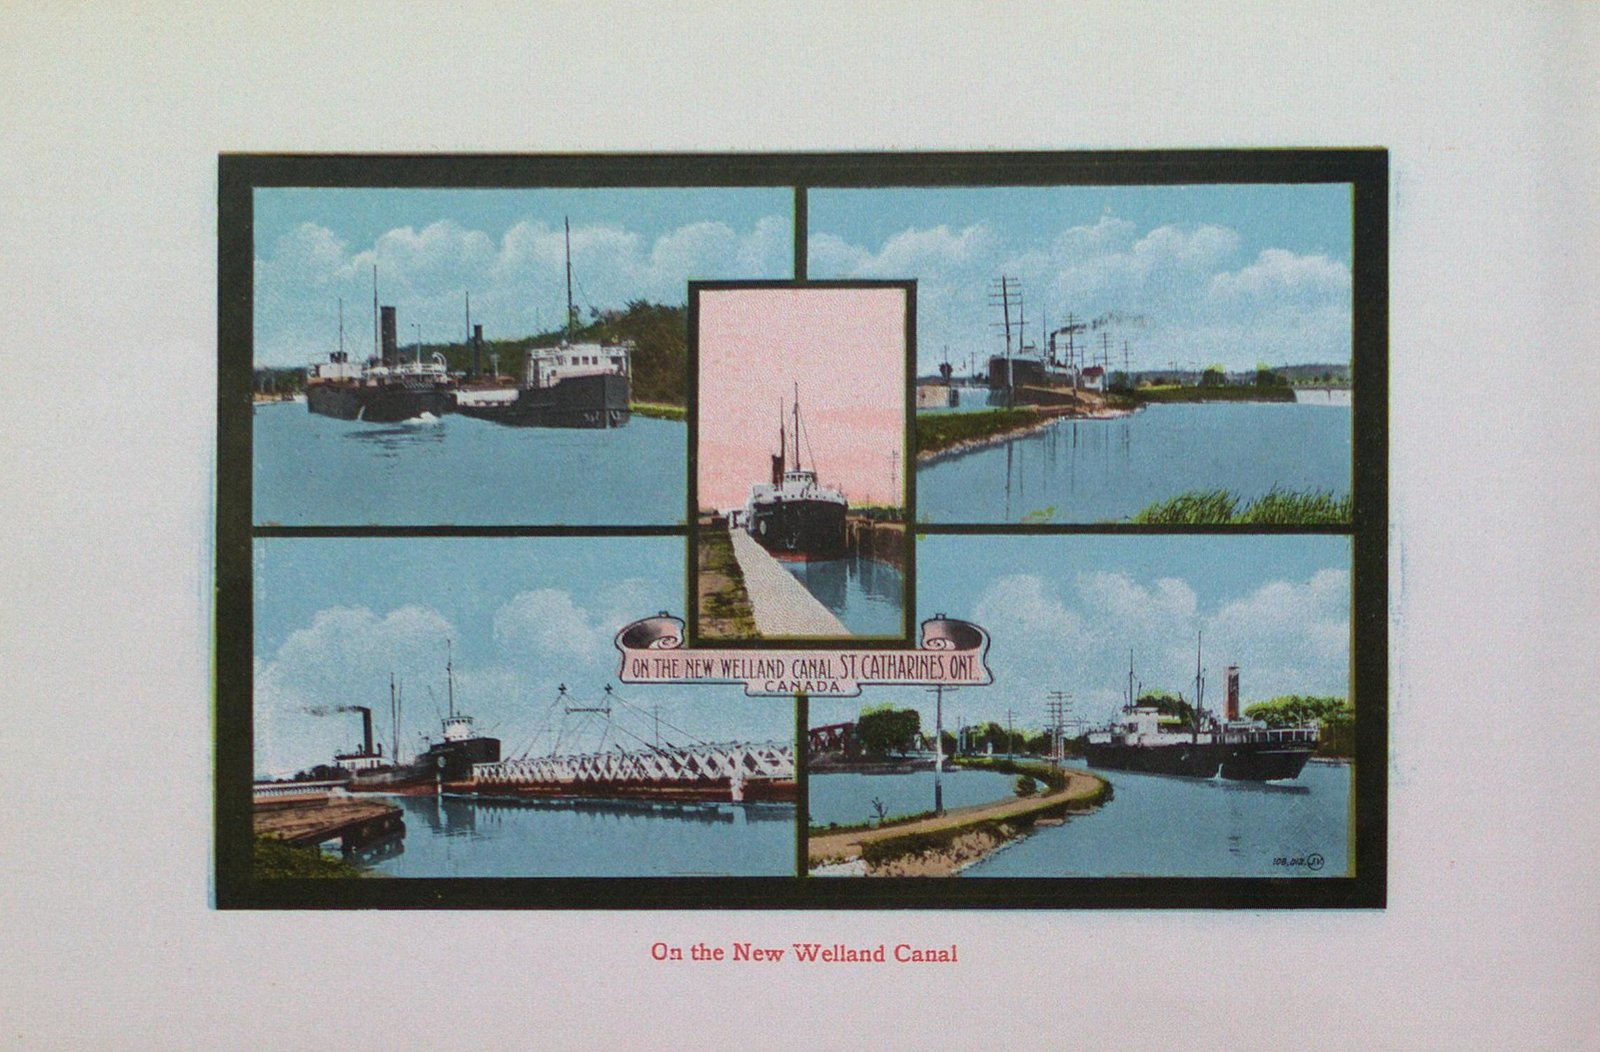 Souvenir of St. Catharines, The New Welland Canal